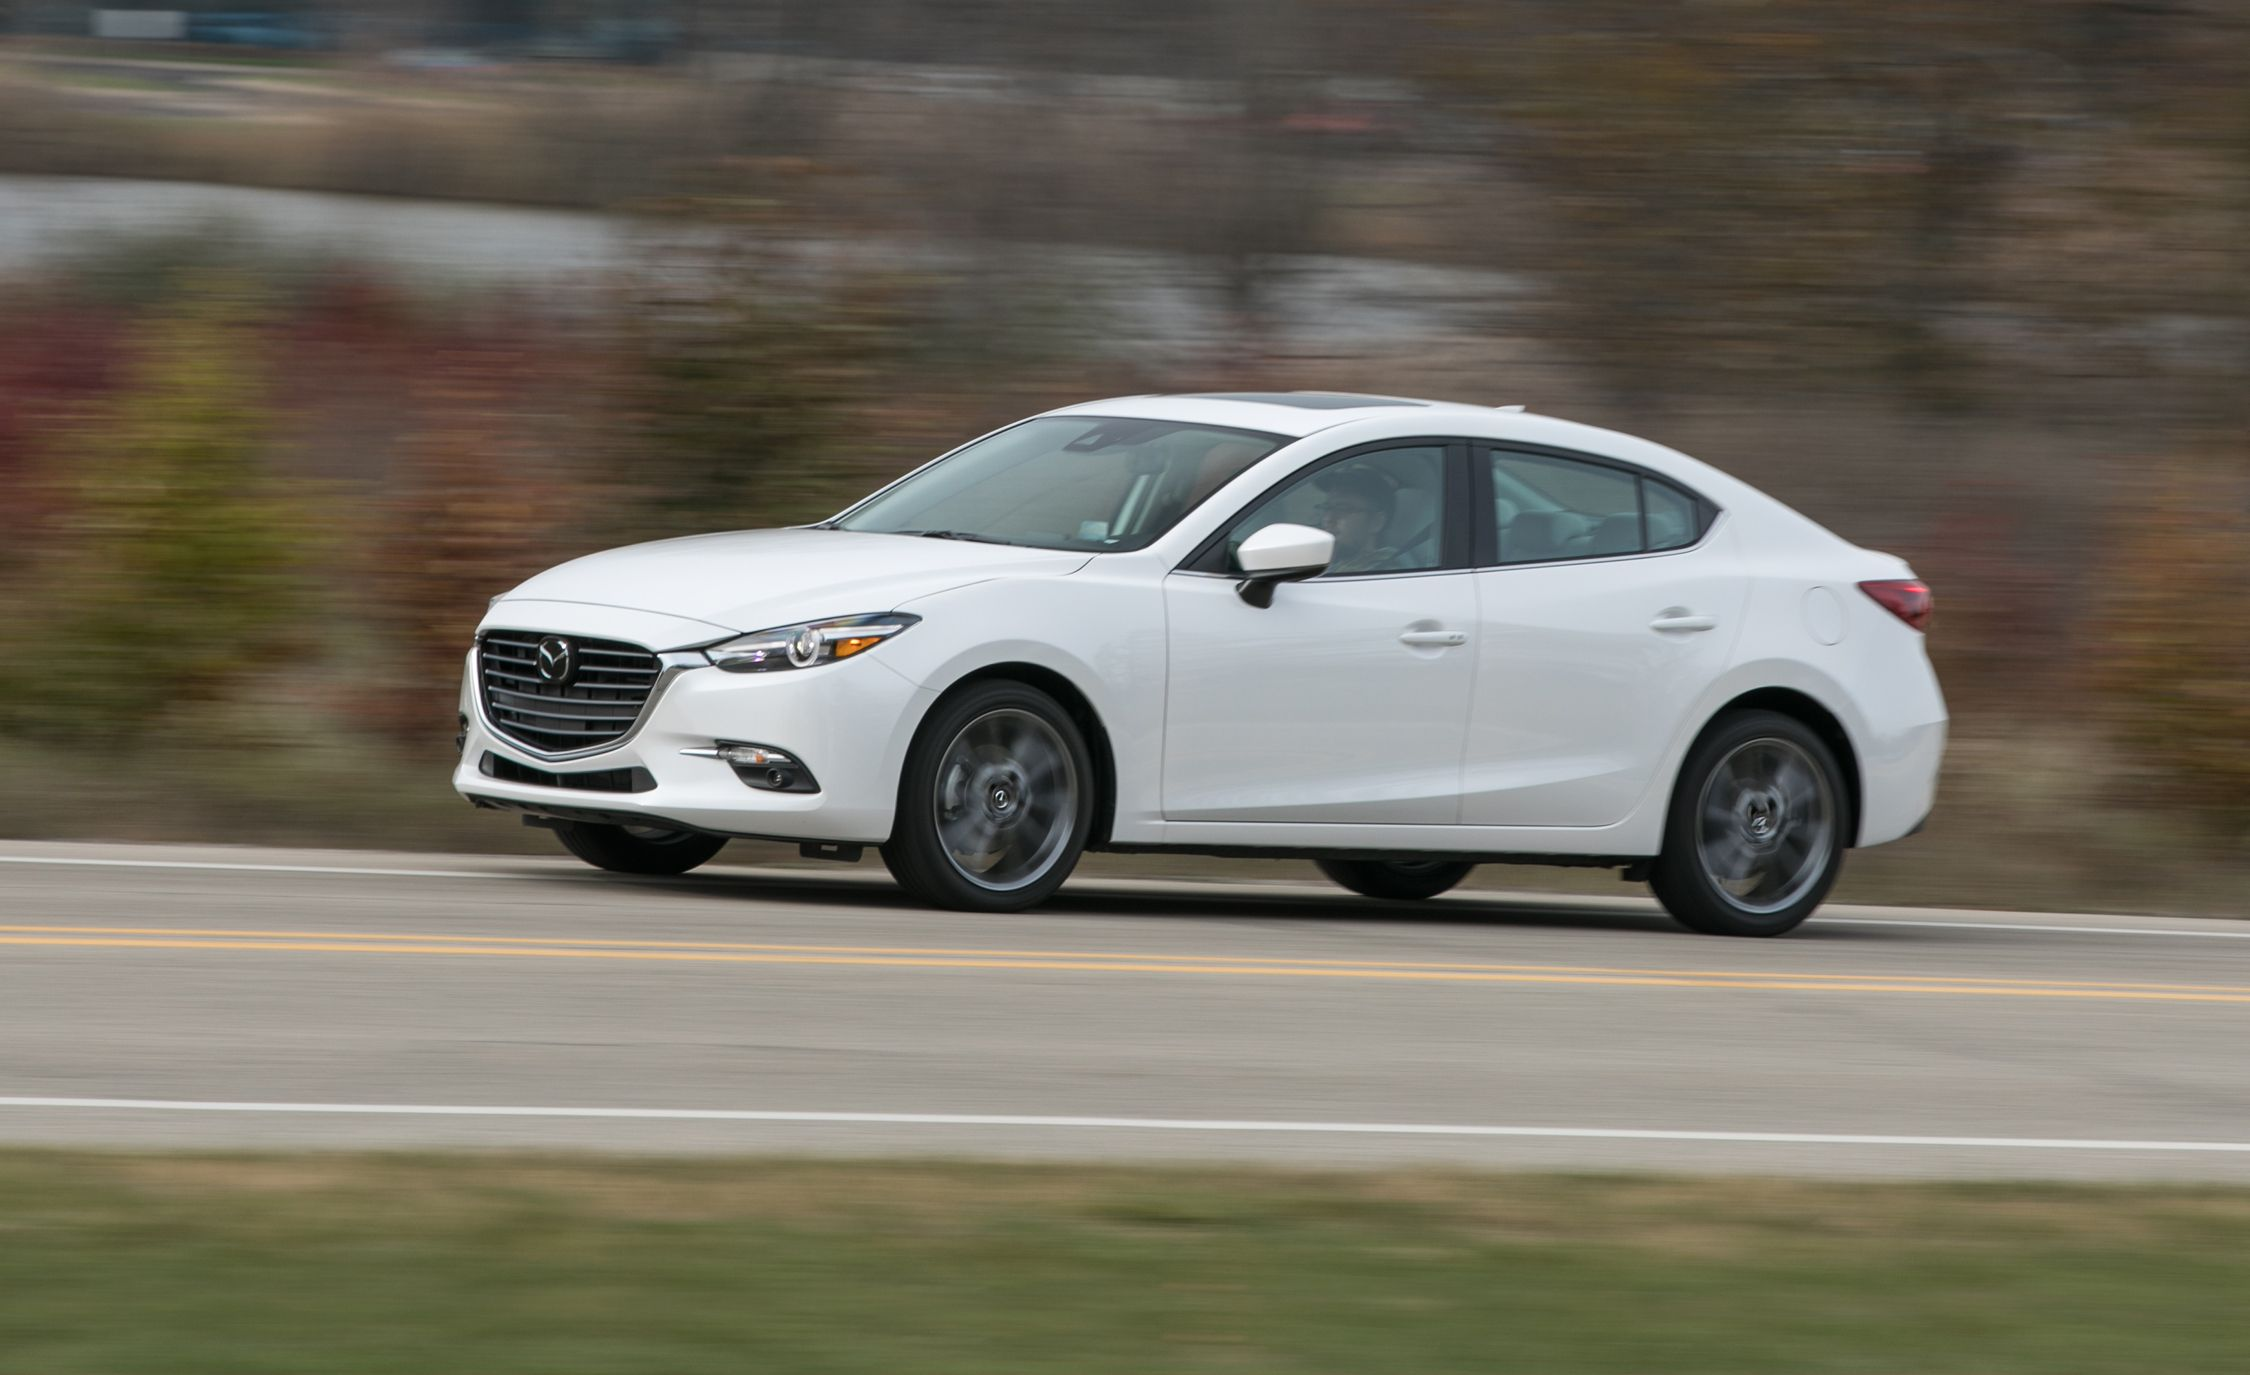 2017 Mazda 3 2 5l Automatic Sedan Tested Review Car And Driver